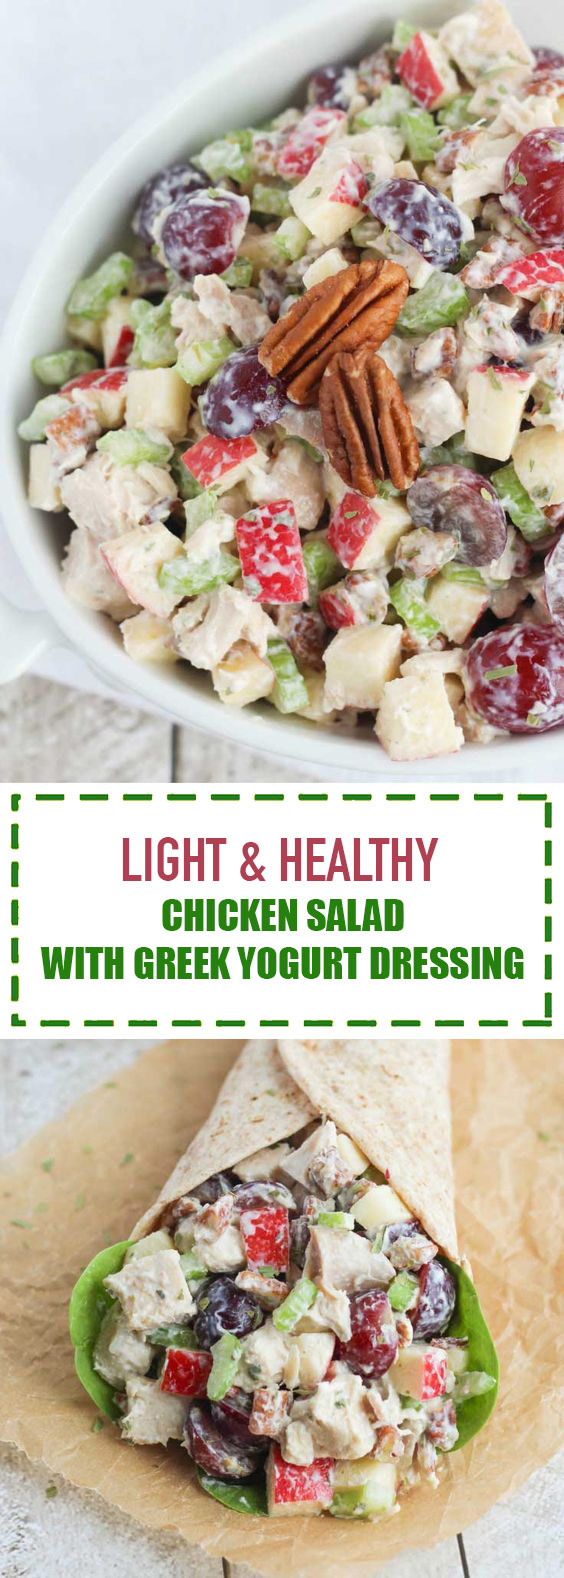 Chicken Salad with Greek Yogurt Dressing